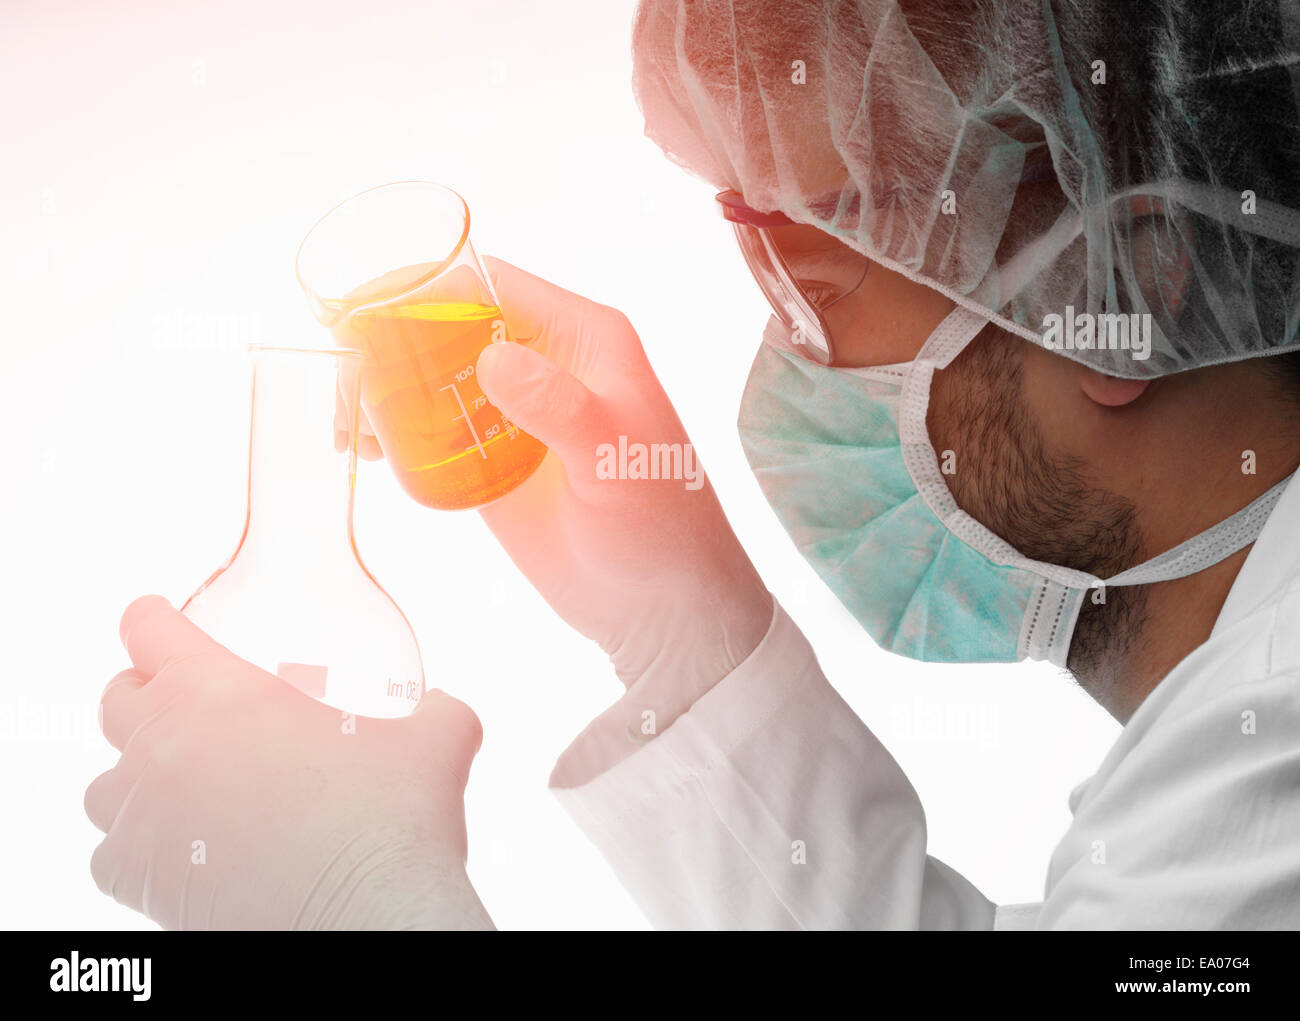 Chemist pouring liquid from beaker into flask - Stock Image